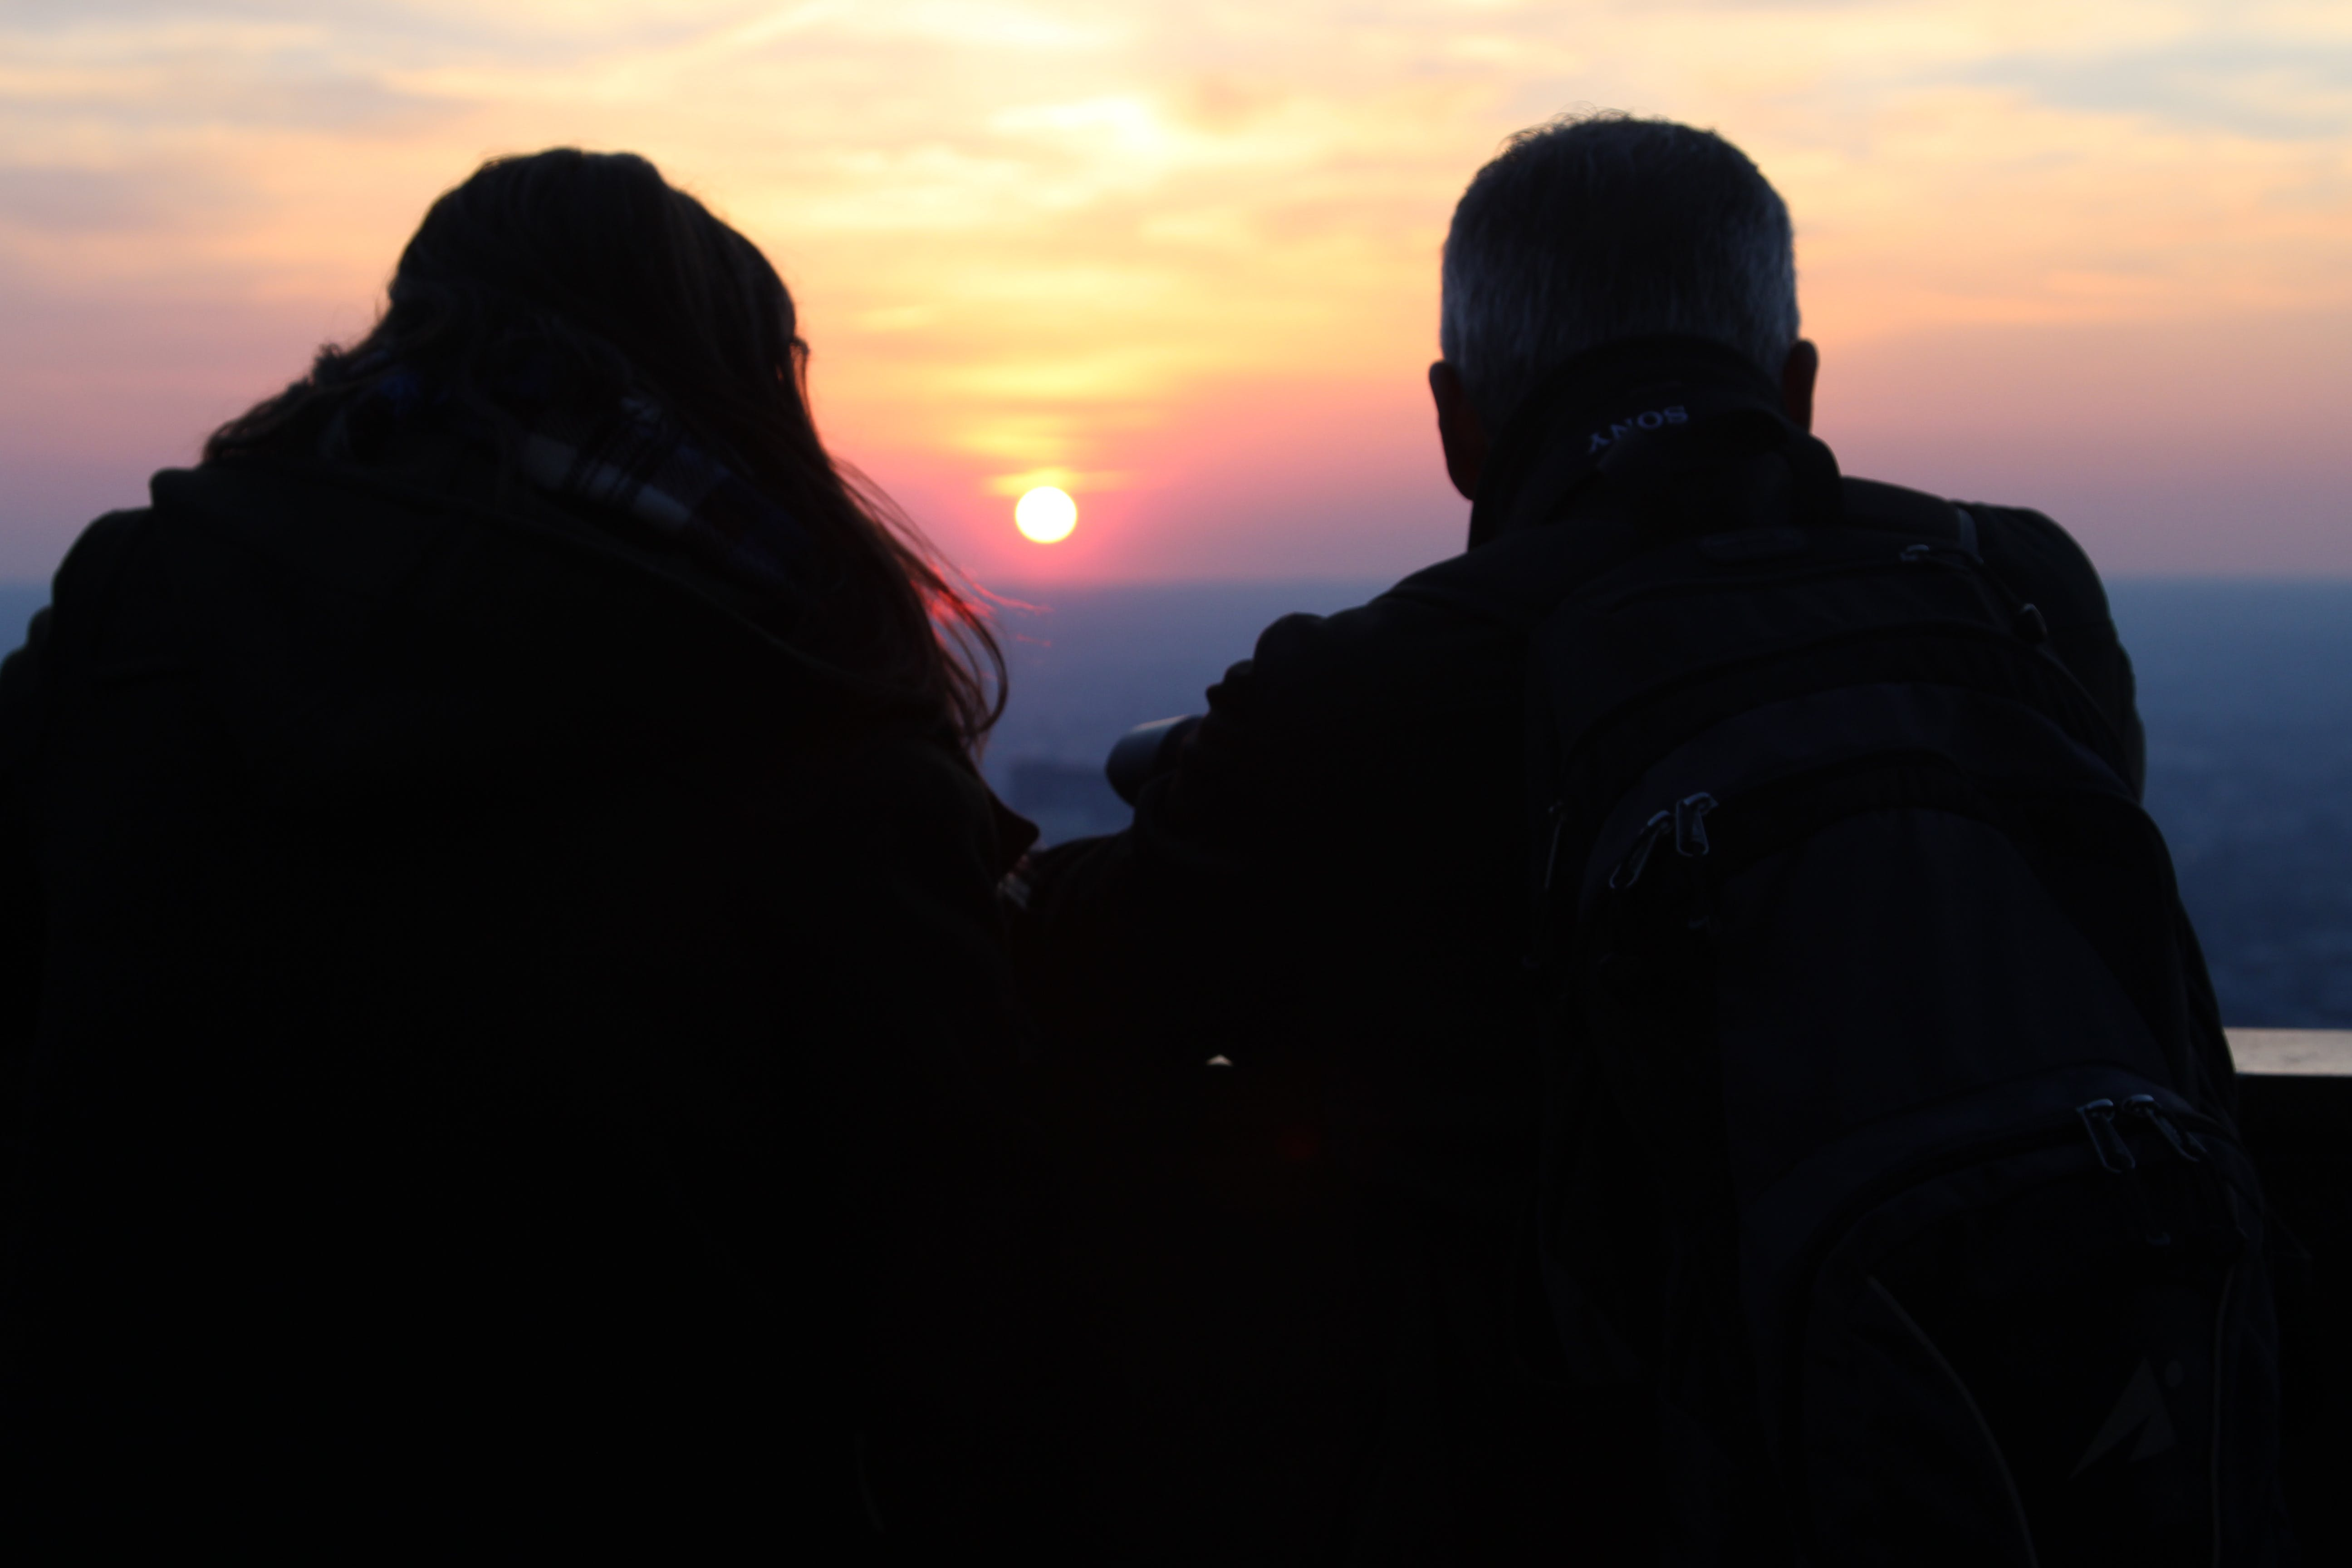 Two Silhouette Person Watching the Sunset